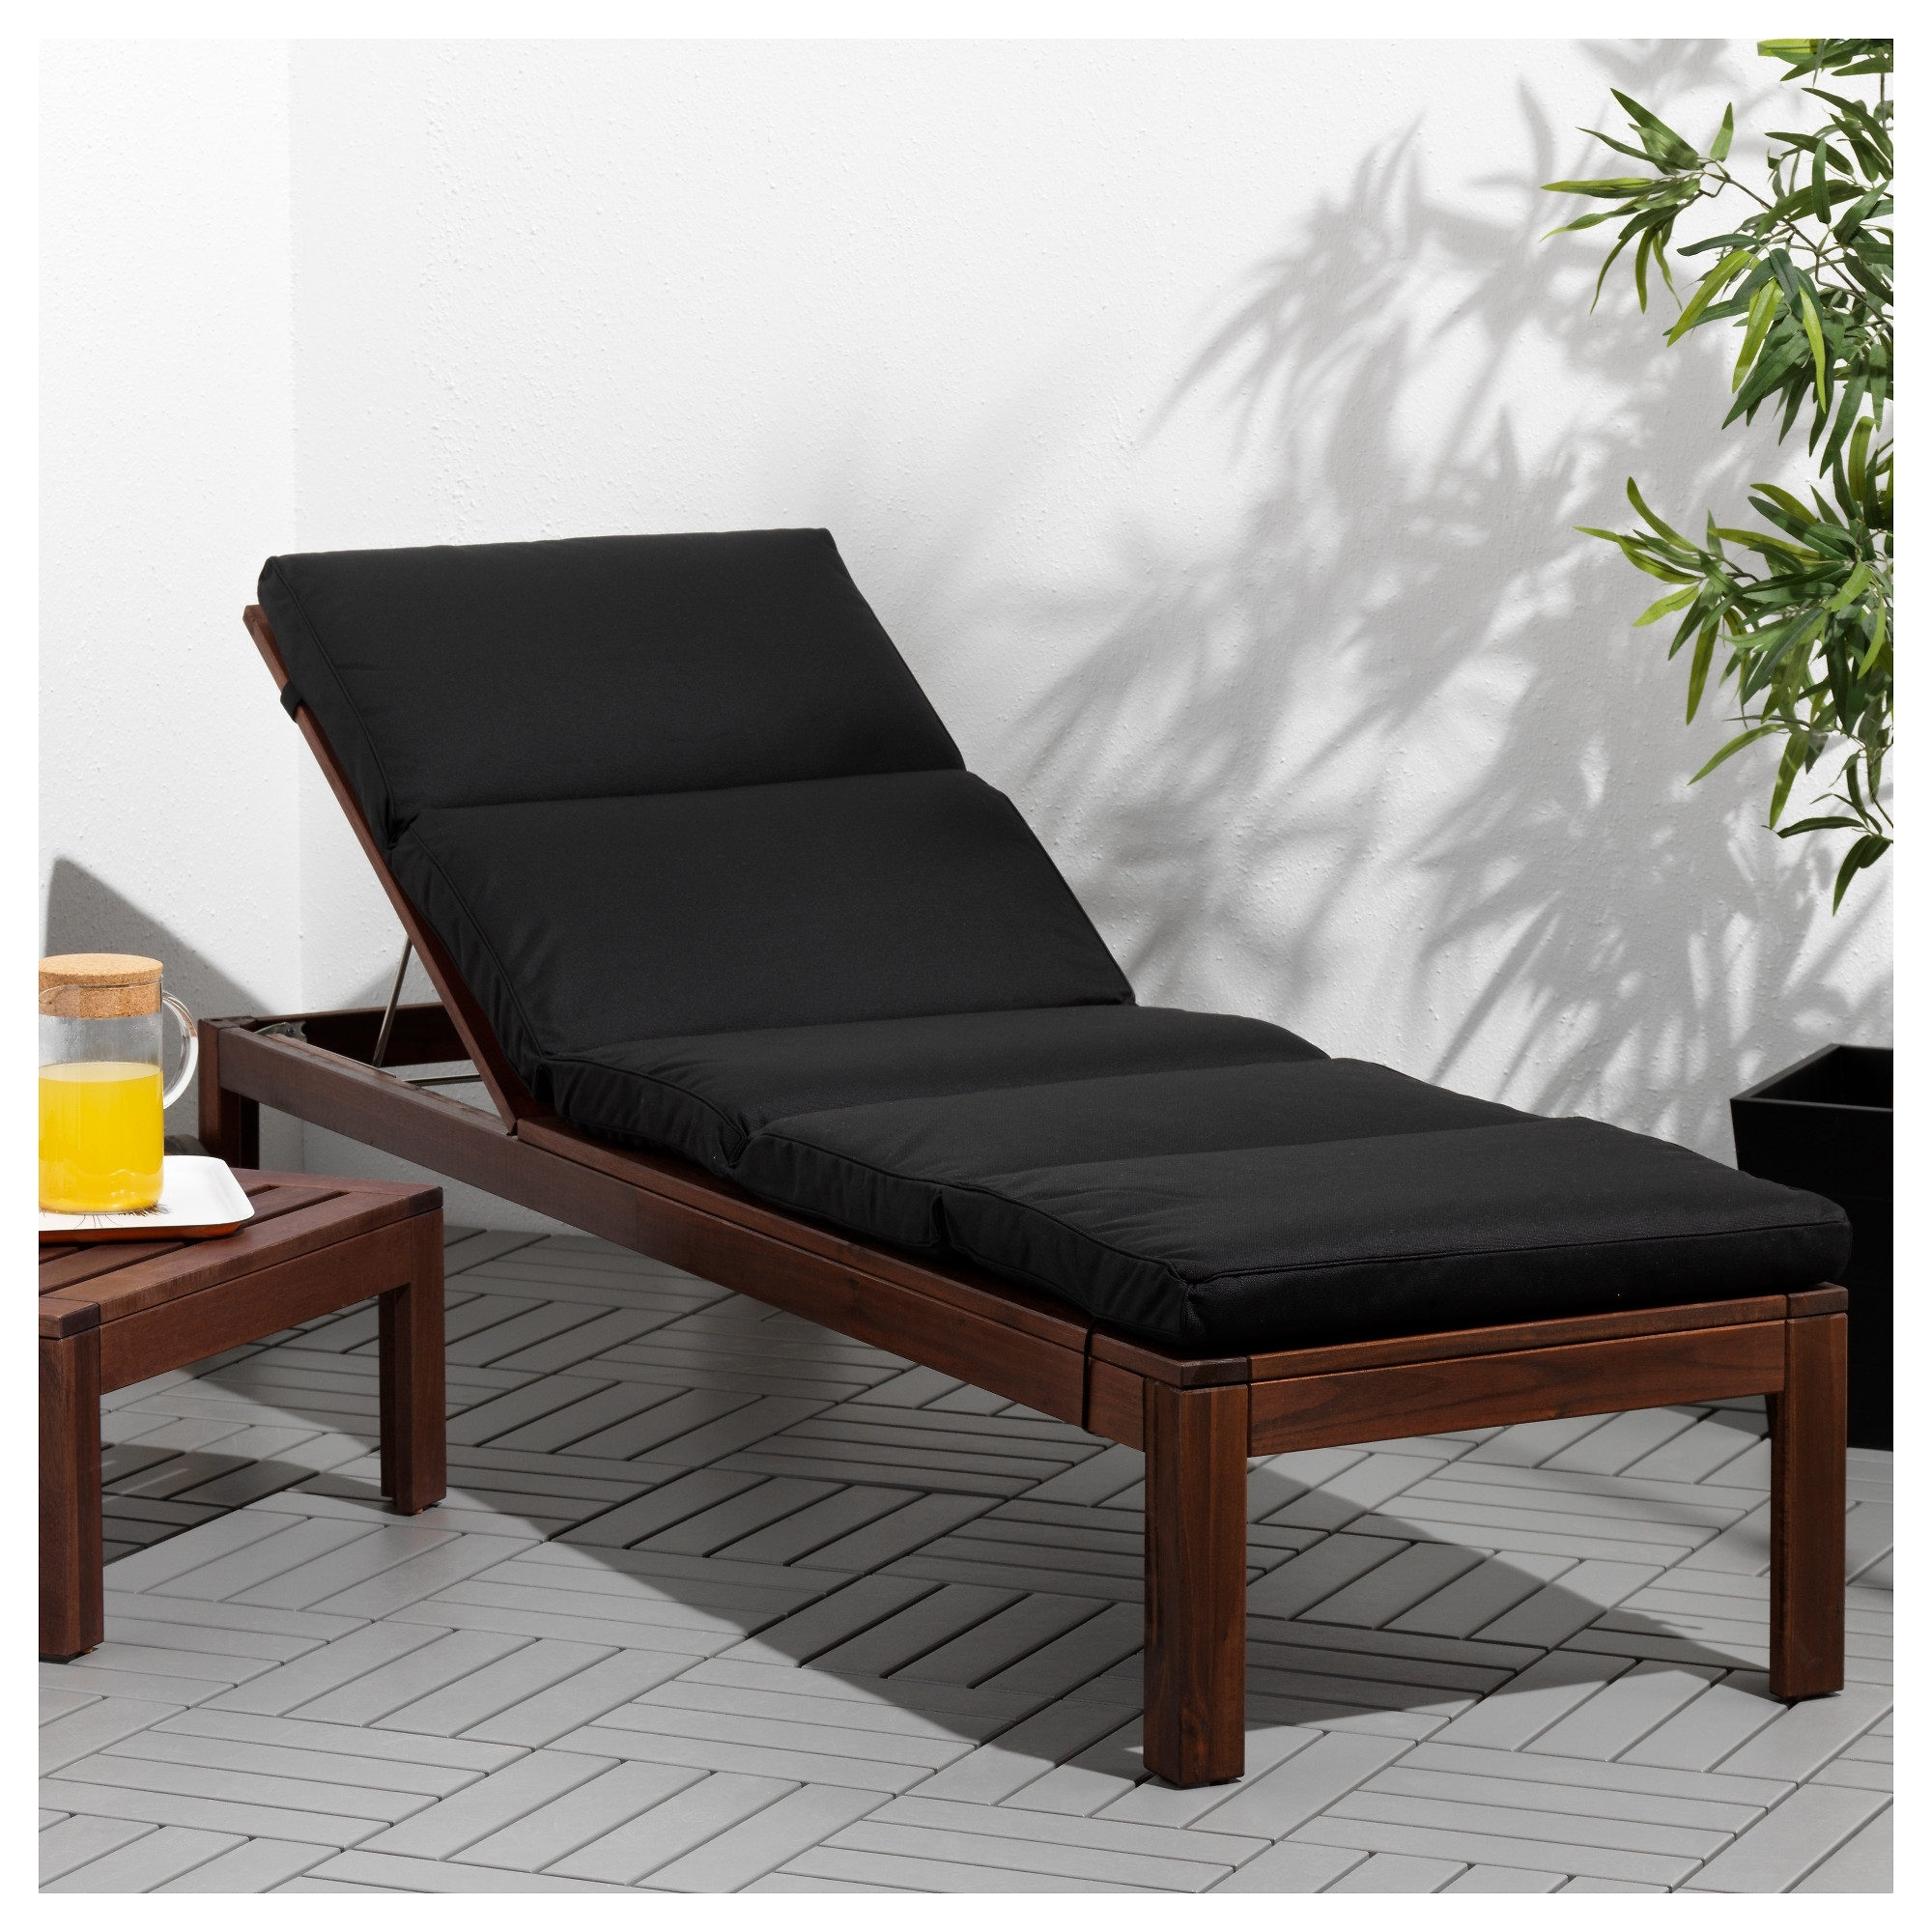 Well Known Outdoor Ikea Chaise Lounge Chairs For Outdoor : Patio Furniture Lounge Lounge Chairs For Bedroom Plastic (View 7 of 15)